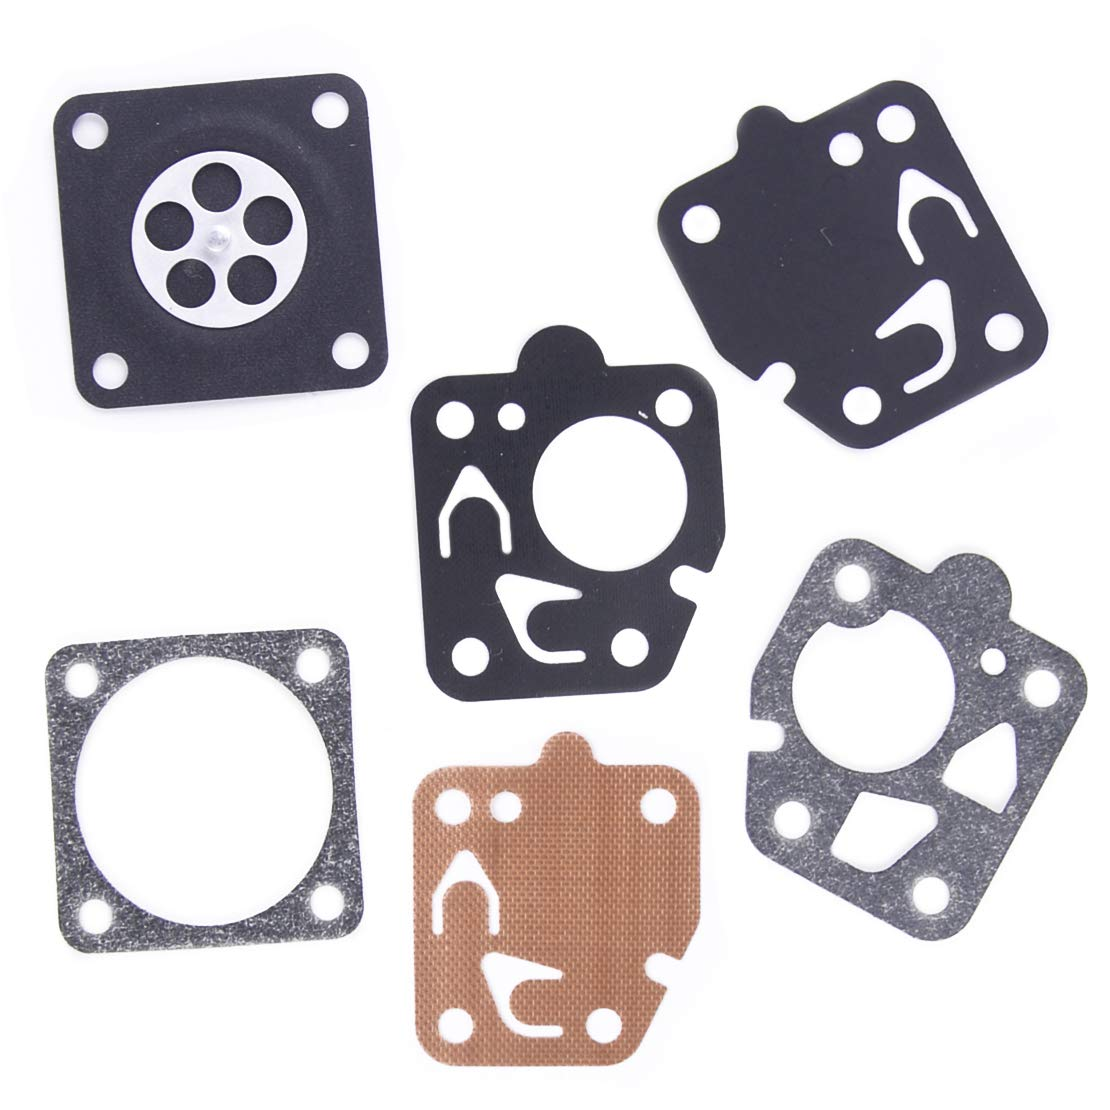 LETAOSK Carburetor Gasket Repair Kit Fit for Kawasaki TG18 TG20 TG24 TG28 TG33 TF22